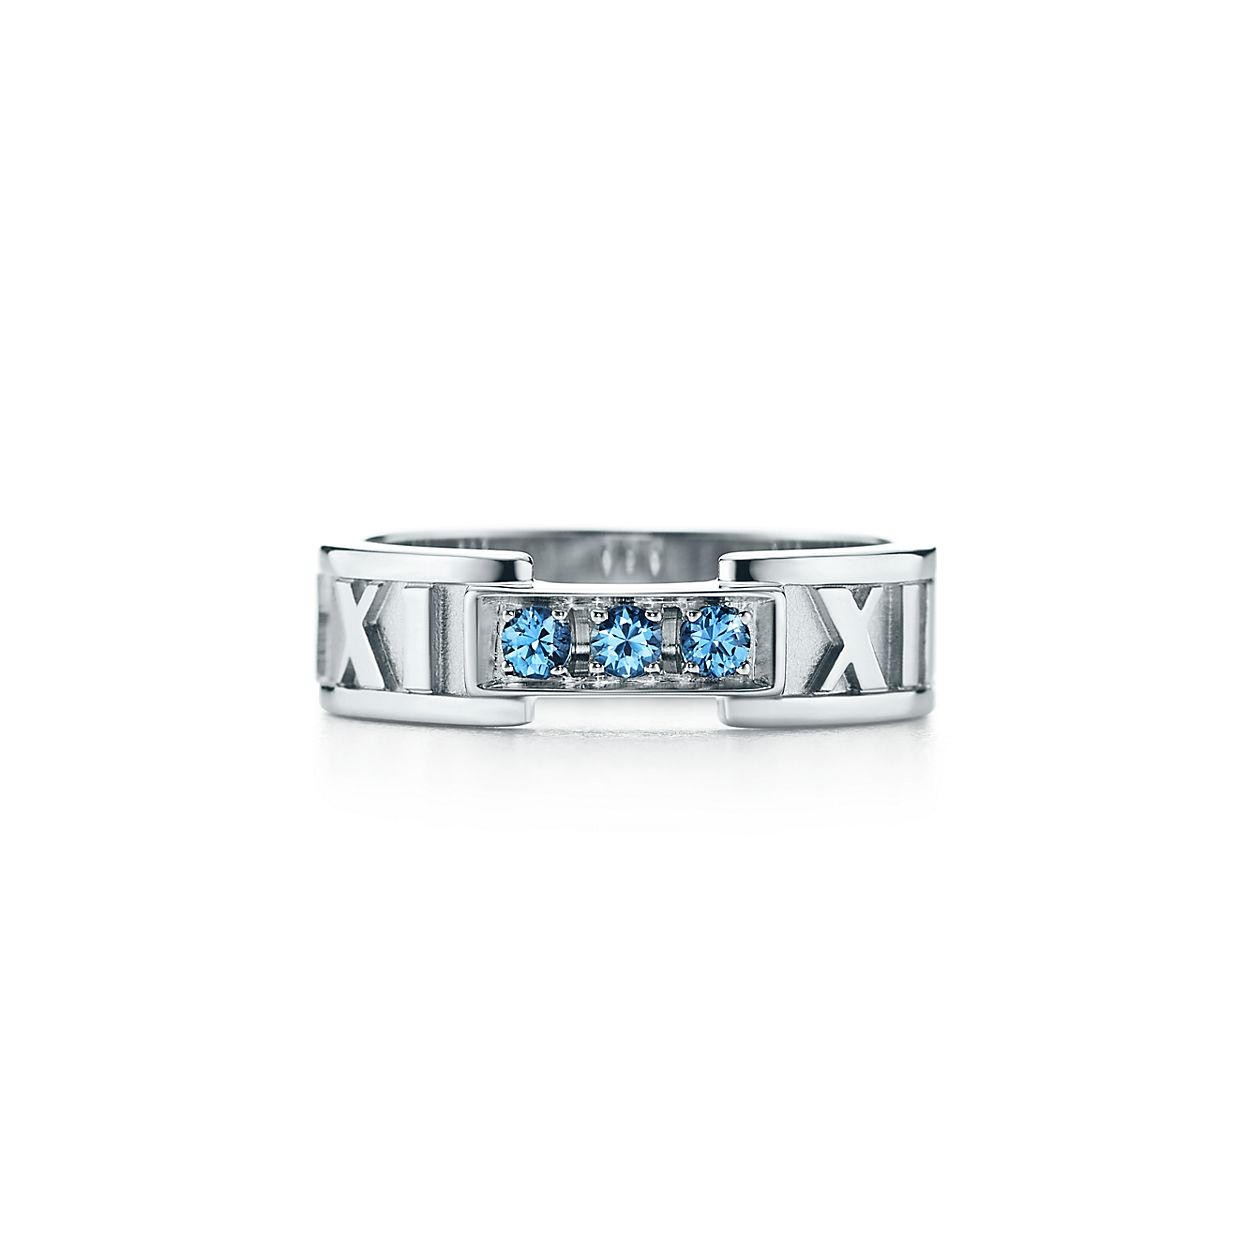 Tiffany 1837 narrow ring in 18k white gold with diamonds - Size 11 1/2 Tiffany & Co. hwQU5IEI7